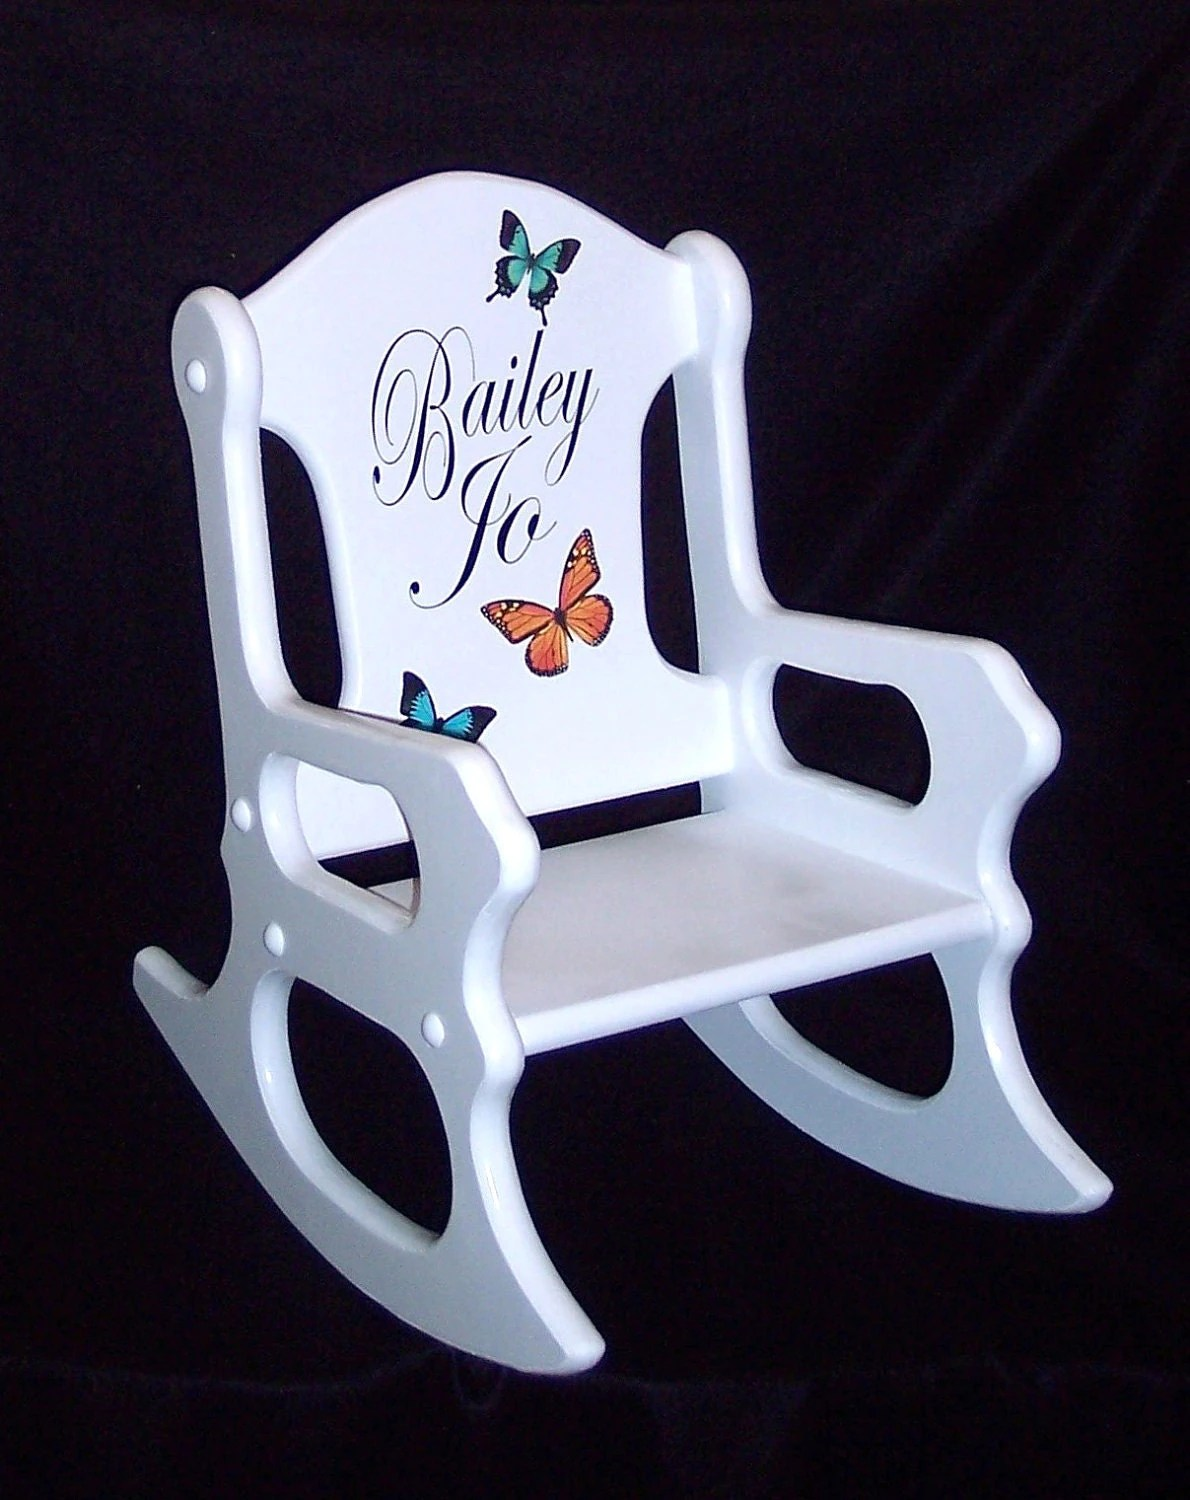 personalized little kid chair bedroom amazon uk kids gift toddler rocking with butterflies